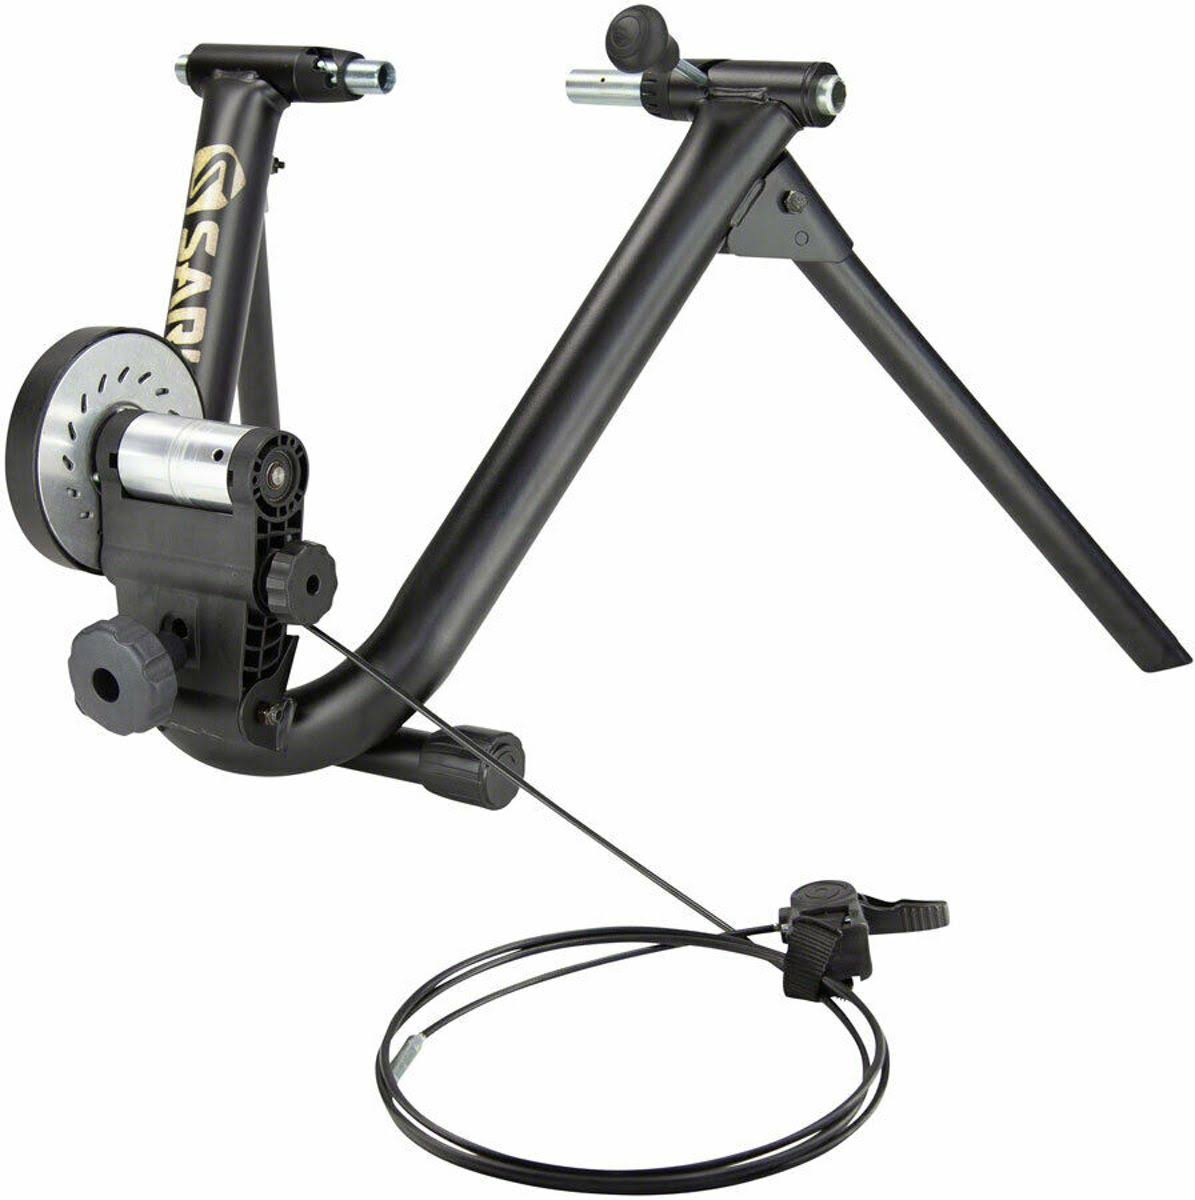 Saris 9902T Mag Trainer - With Remote, Magnetic Resistance Adjustable